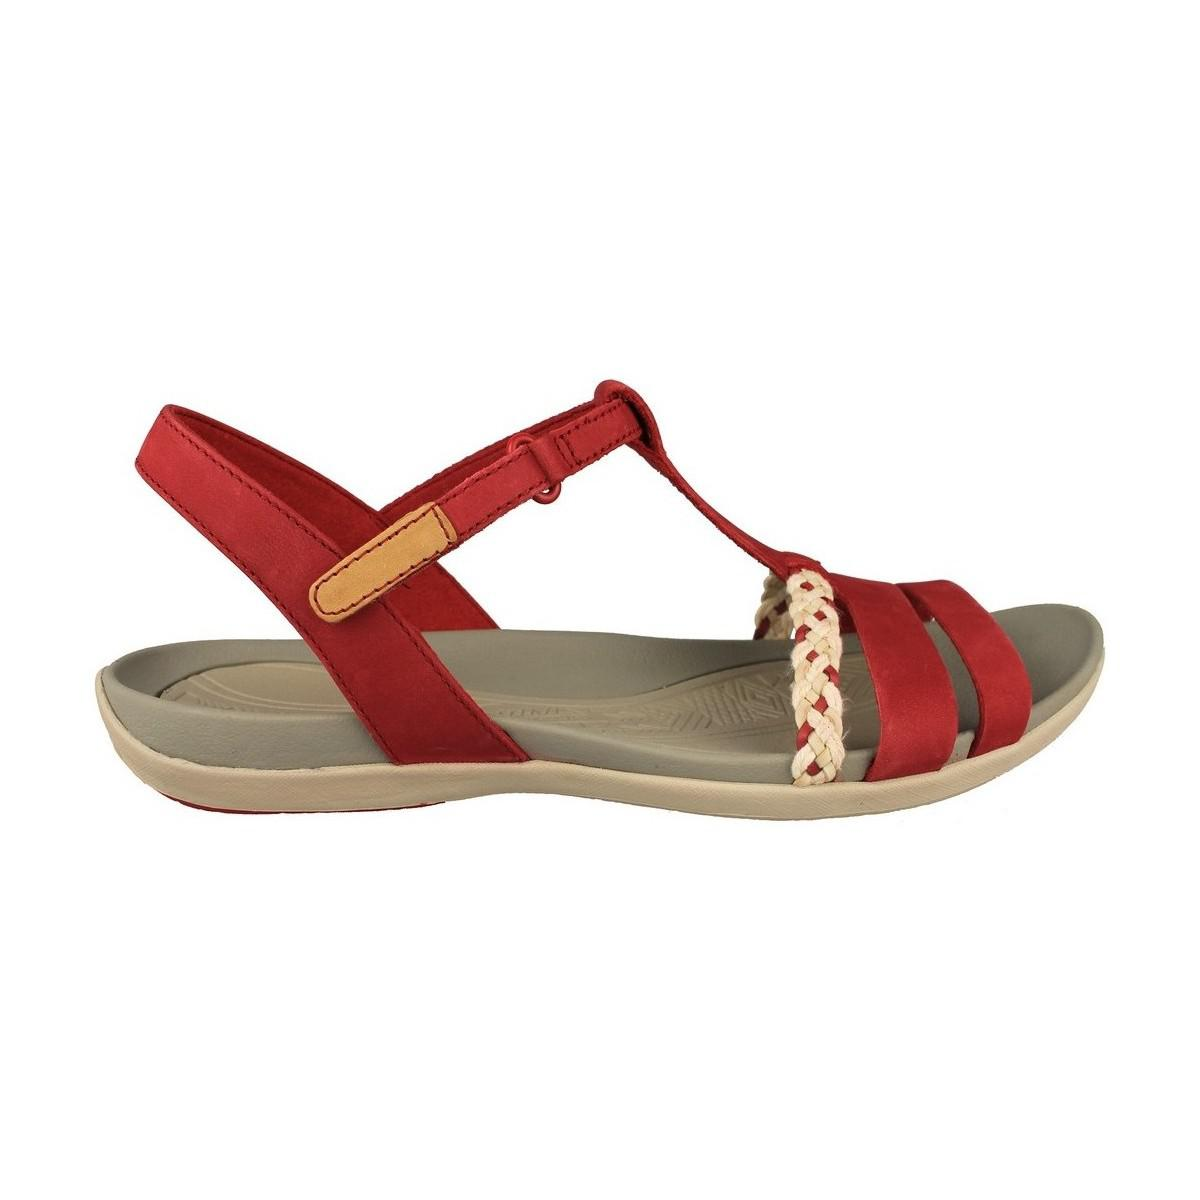 953121d3e5b8 Clarks Tealite Grace Women s Sandals In Red in Red - Lyst